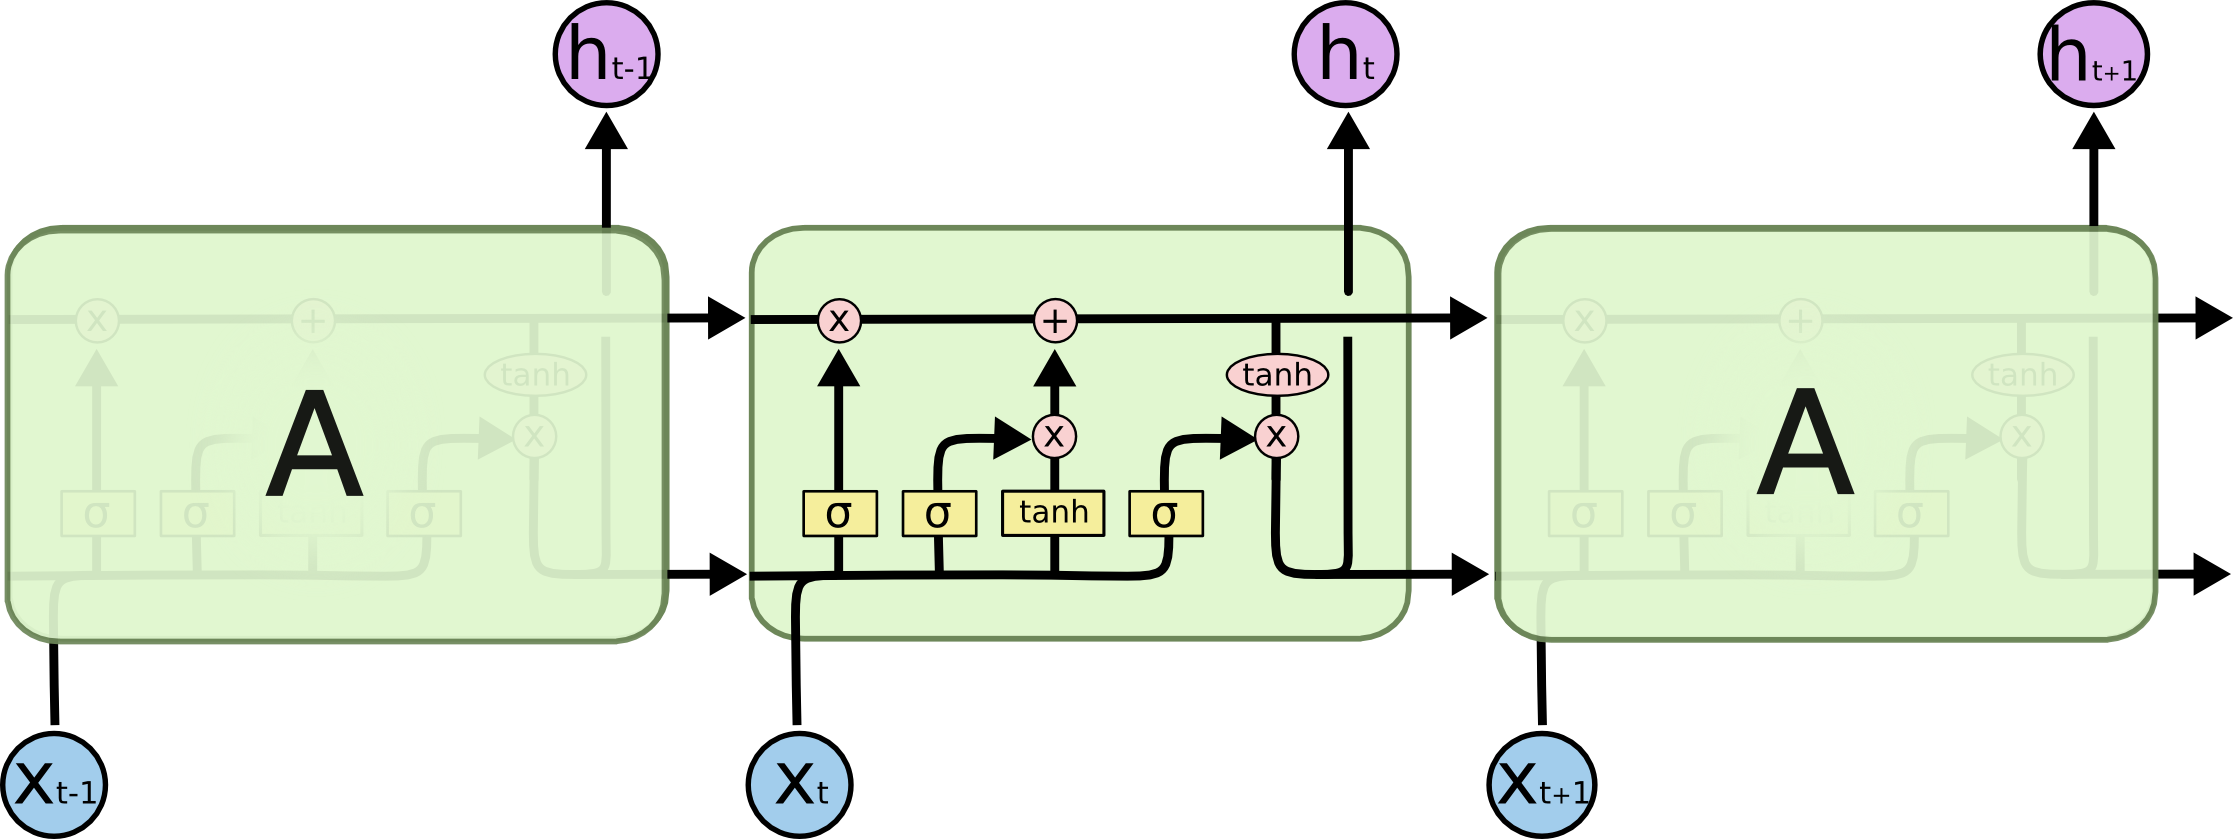 The repeating module in an LSTM contains four interacting layers.